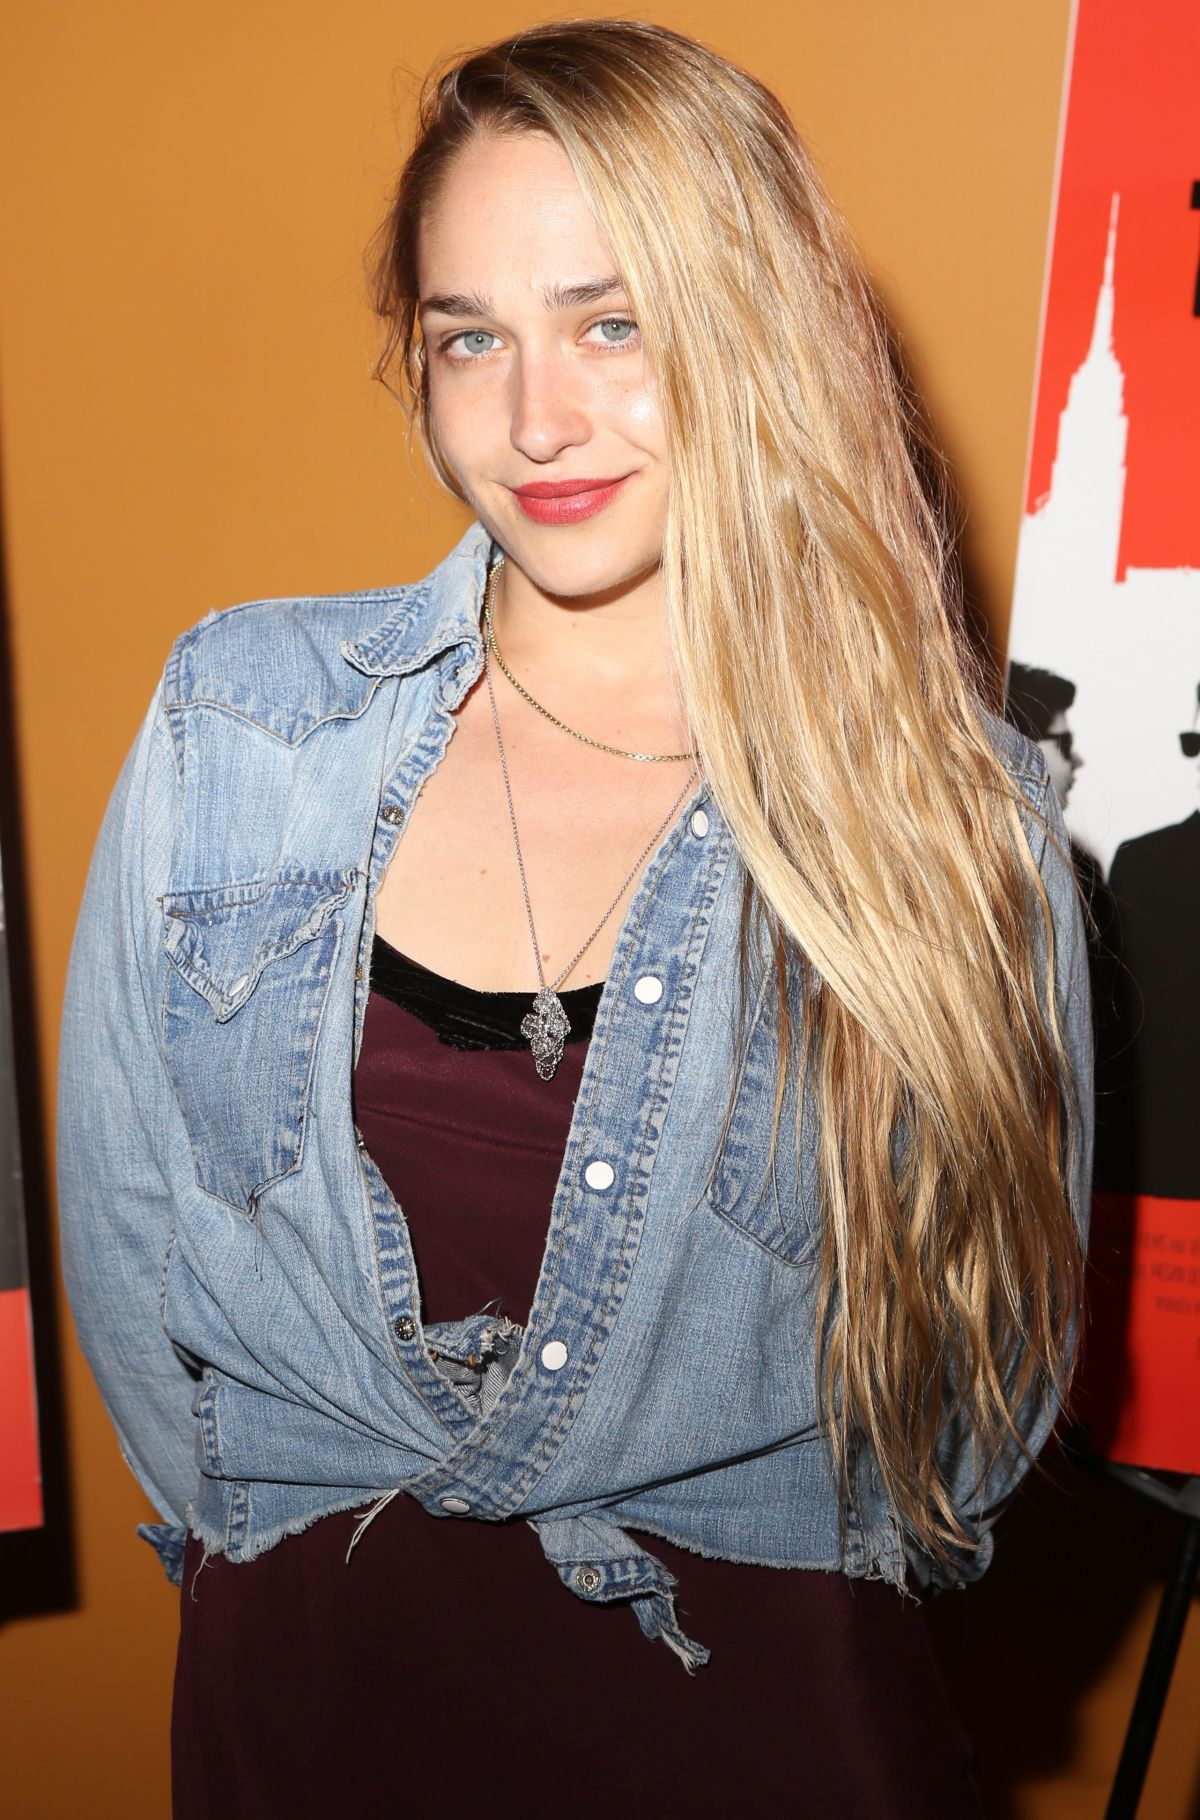 JEMIMA KIRKE at The Wolfpack Premiere in New York